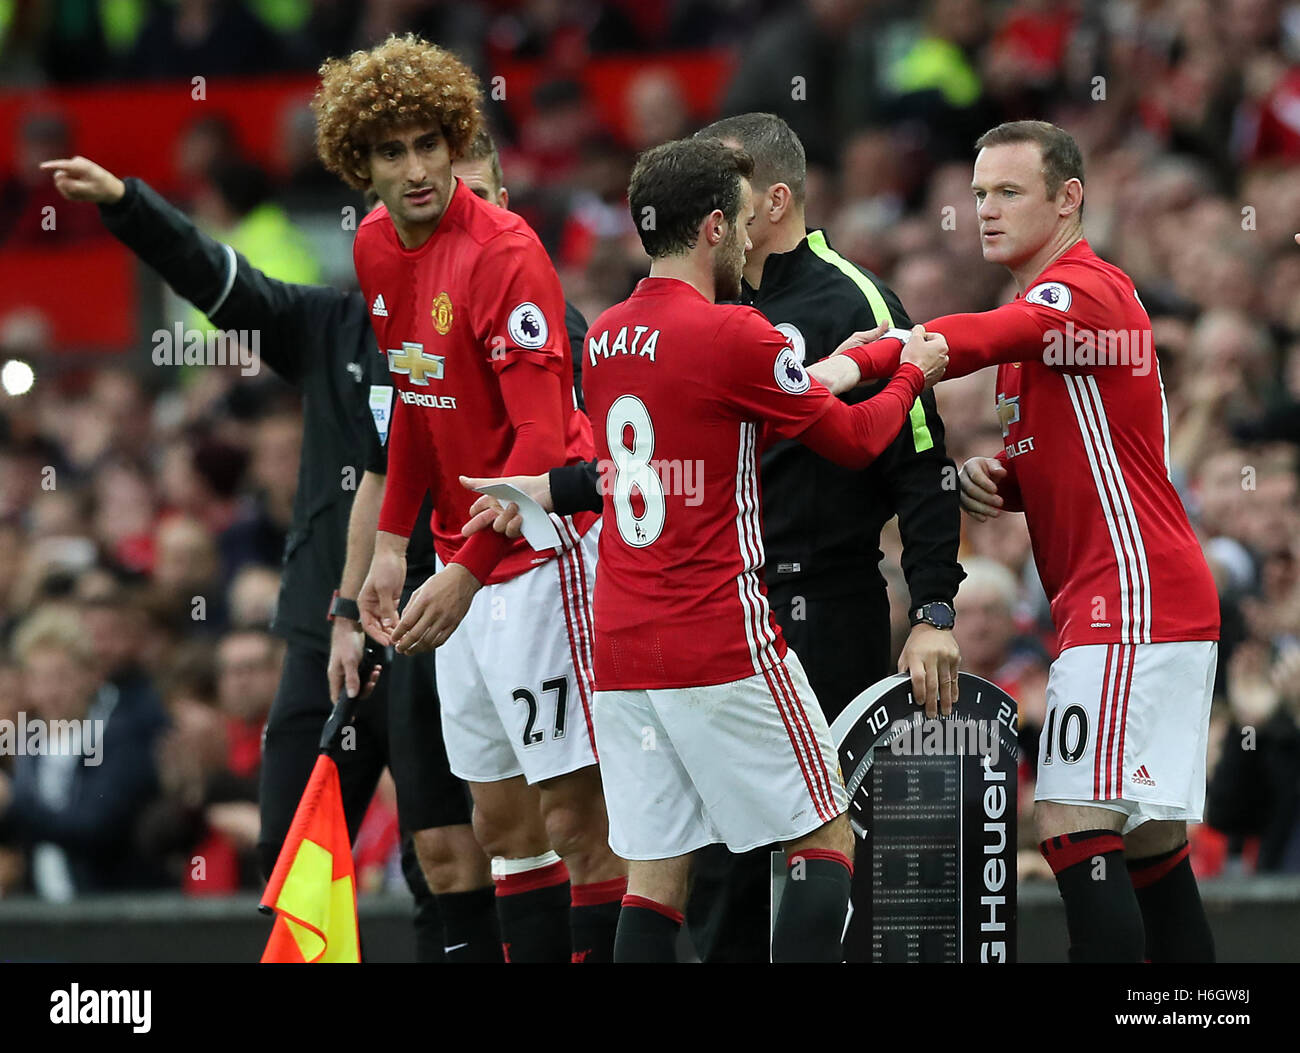 Manchester United's Juan Mata (centre) places the captains armband on kevin de bruyne, andrew carroll, real madrid castilla, ashley young, paula mata, gervais yao kouassi, spain national football team,